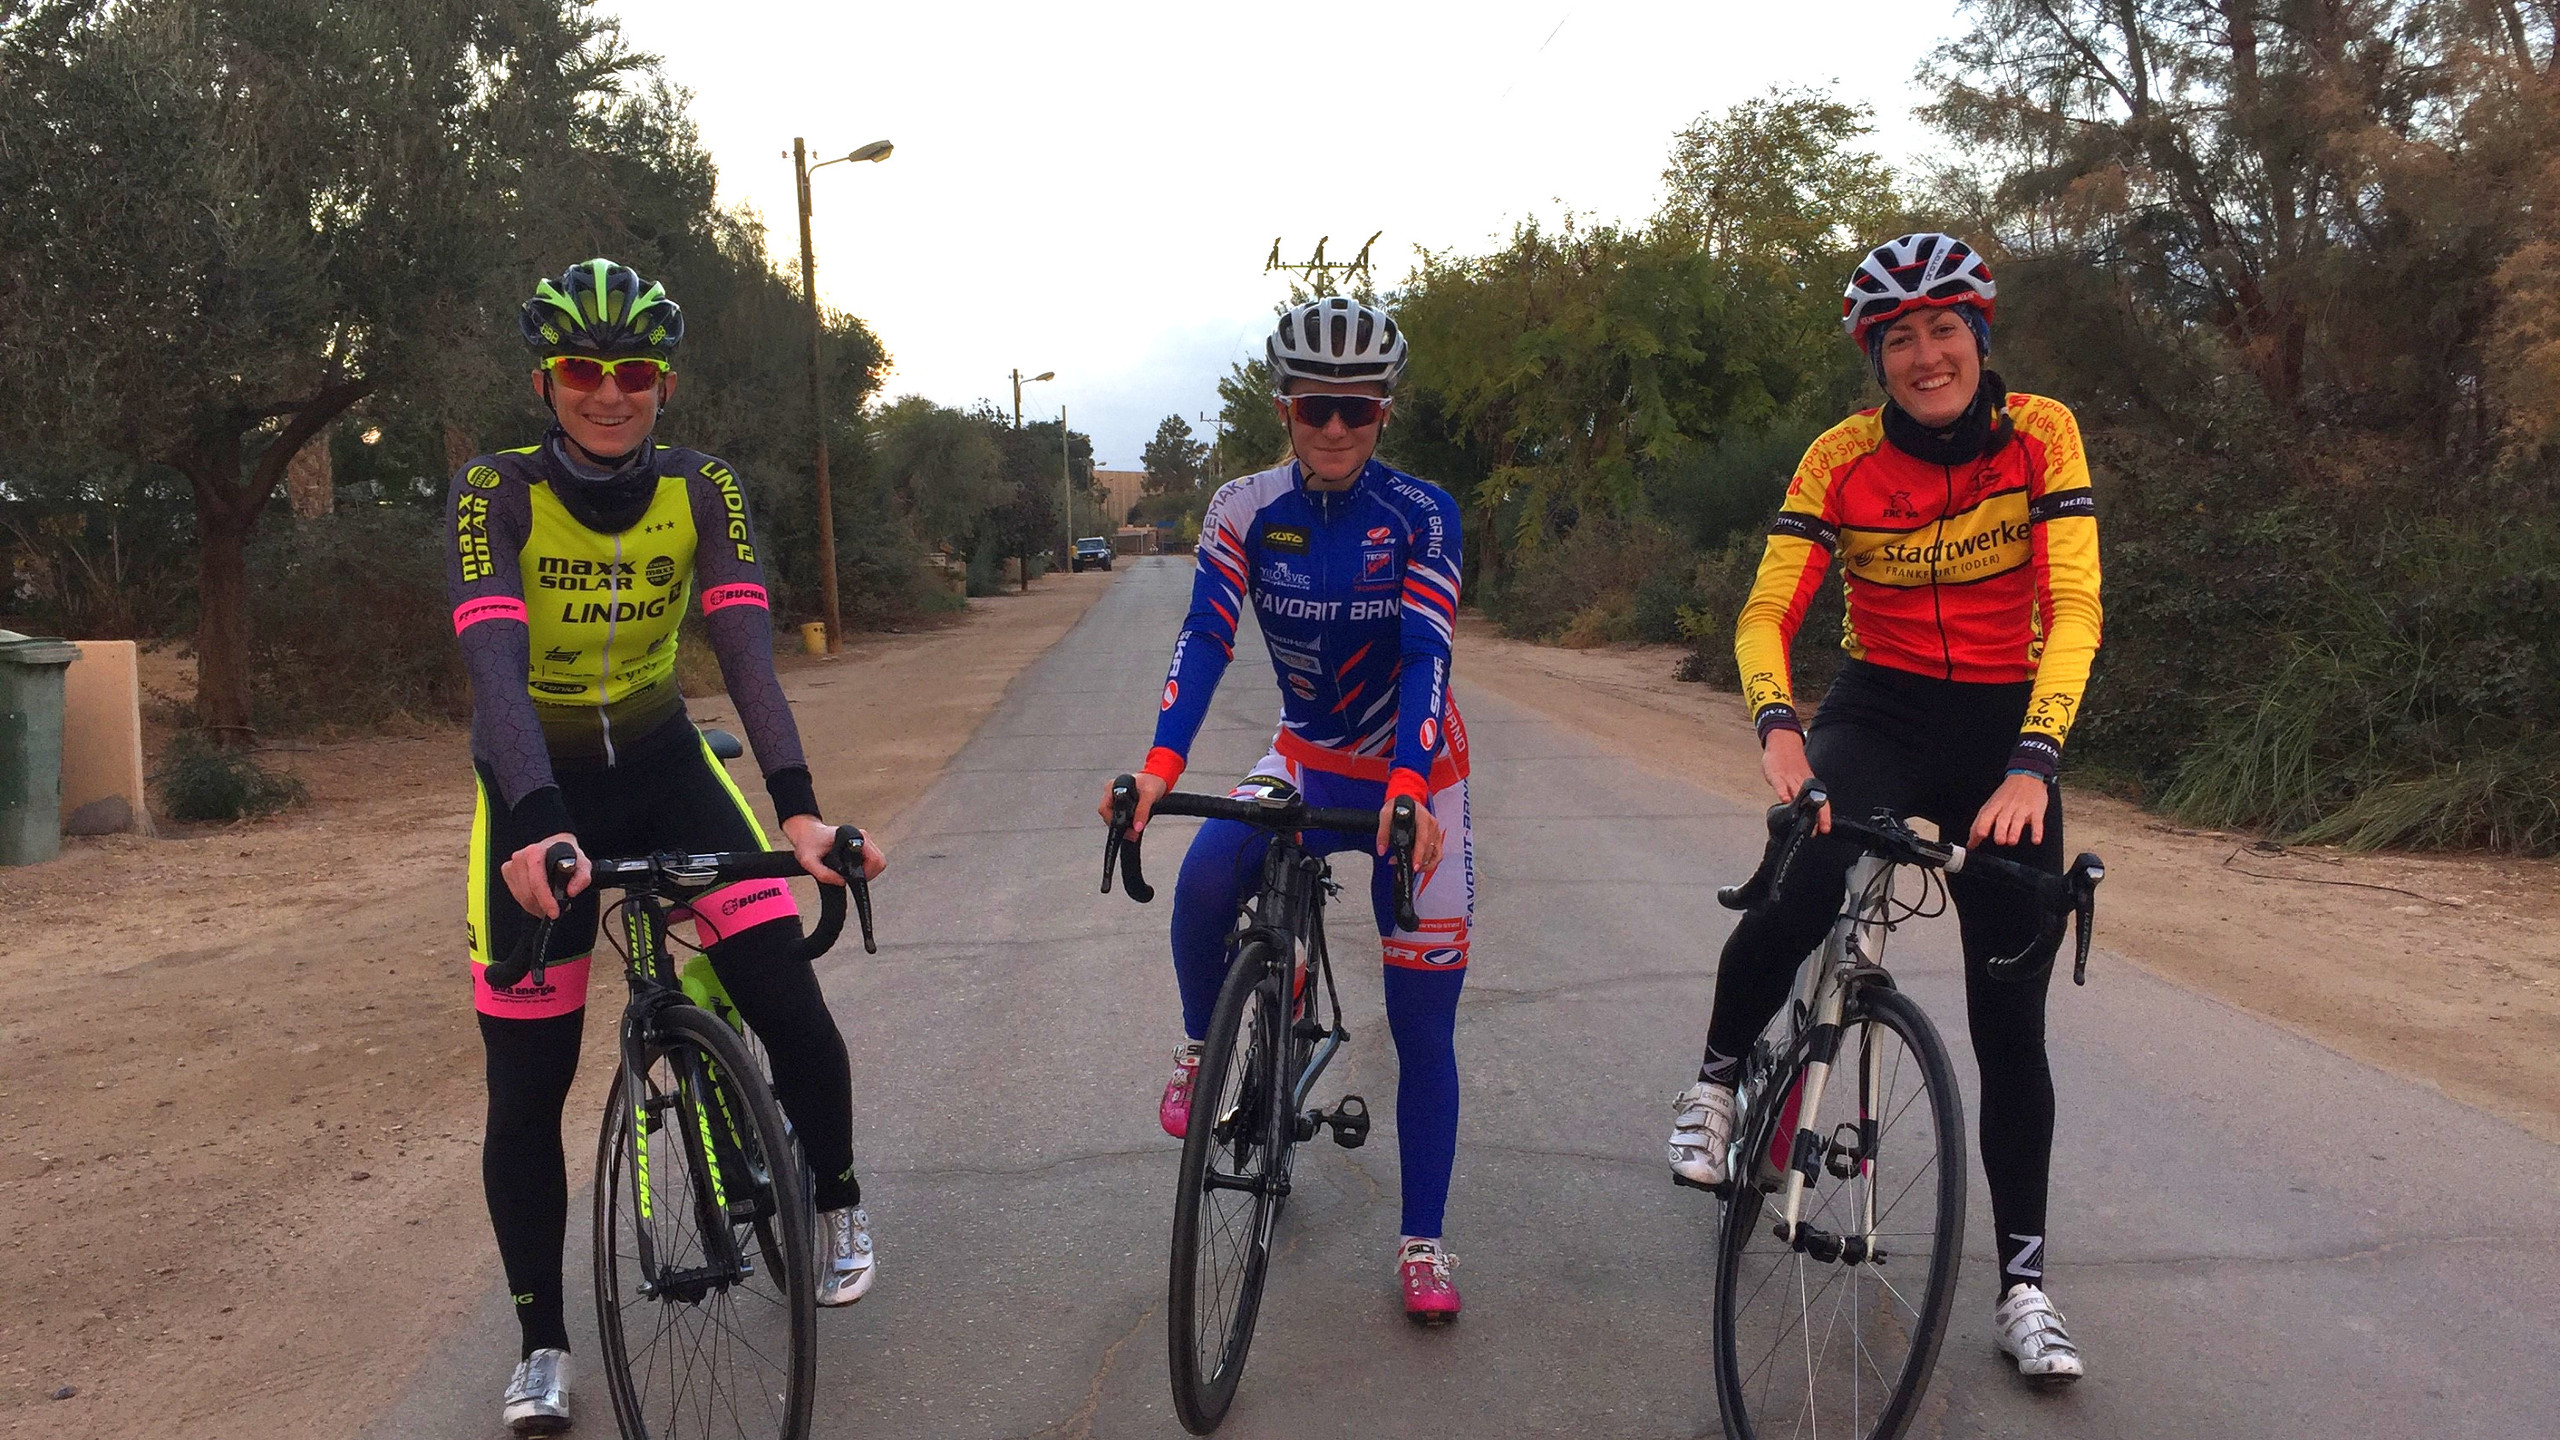 Trainingstour im Nahen Osten